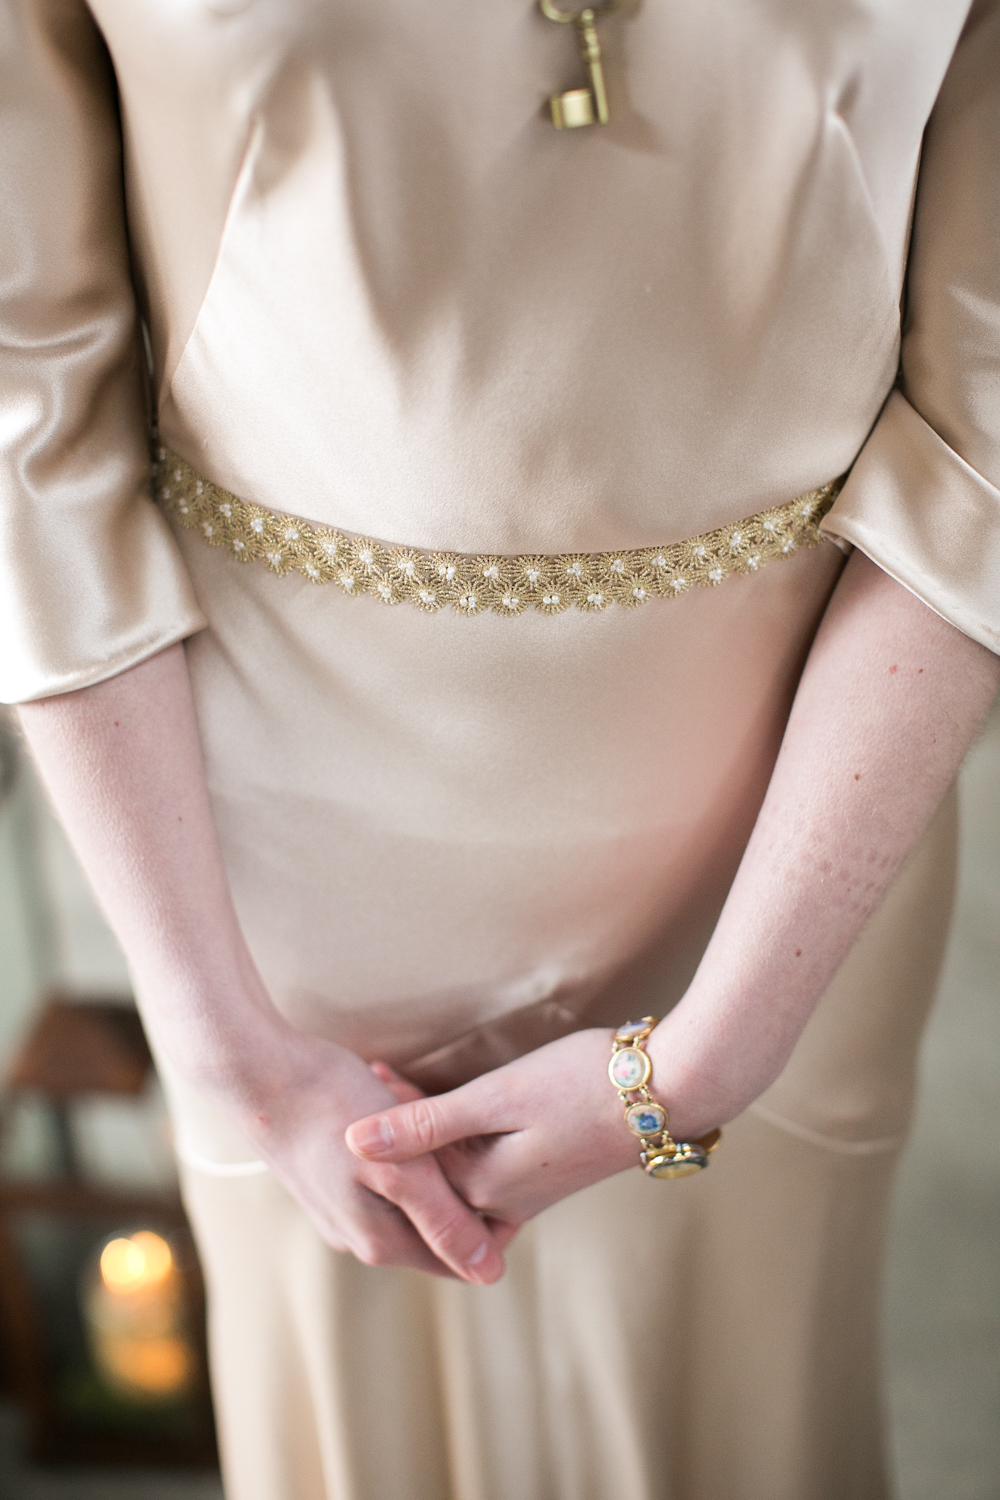 blush dress vintage style gold belt hushed commotion